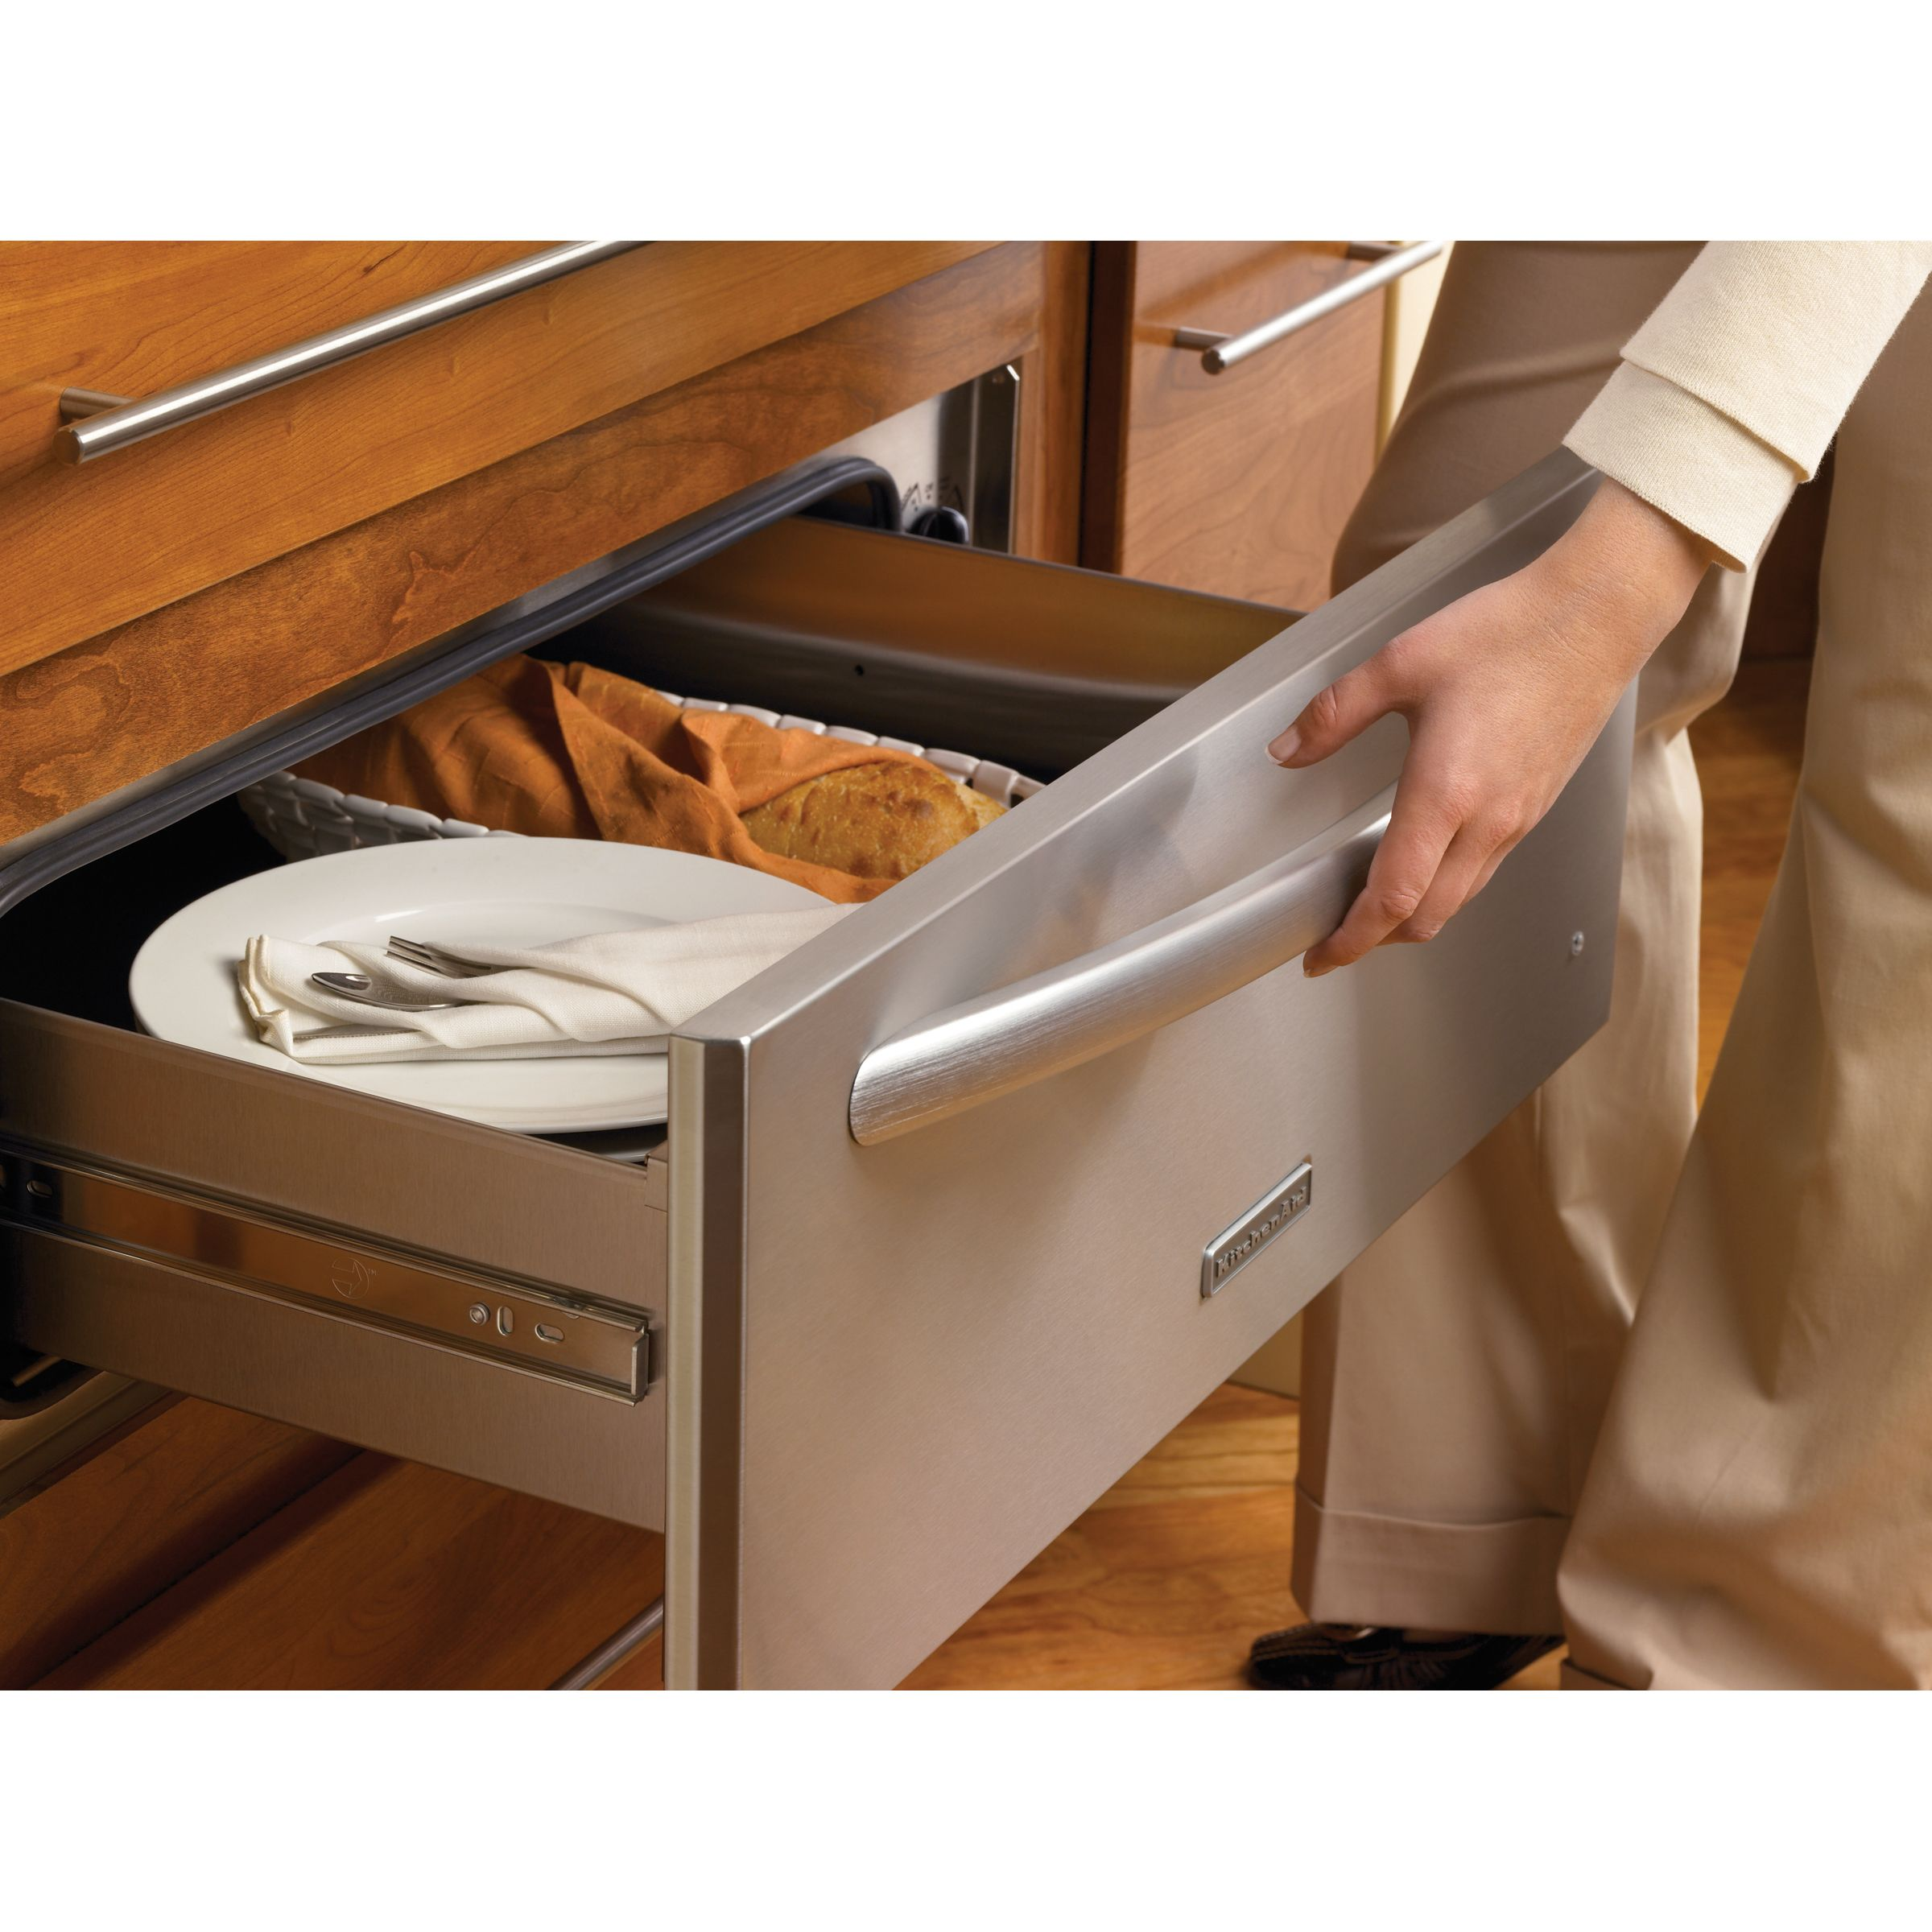 "KitchenAid 27"" Slow Cook Warming Drawer"